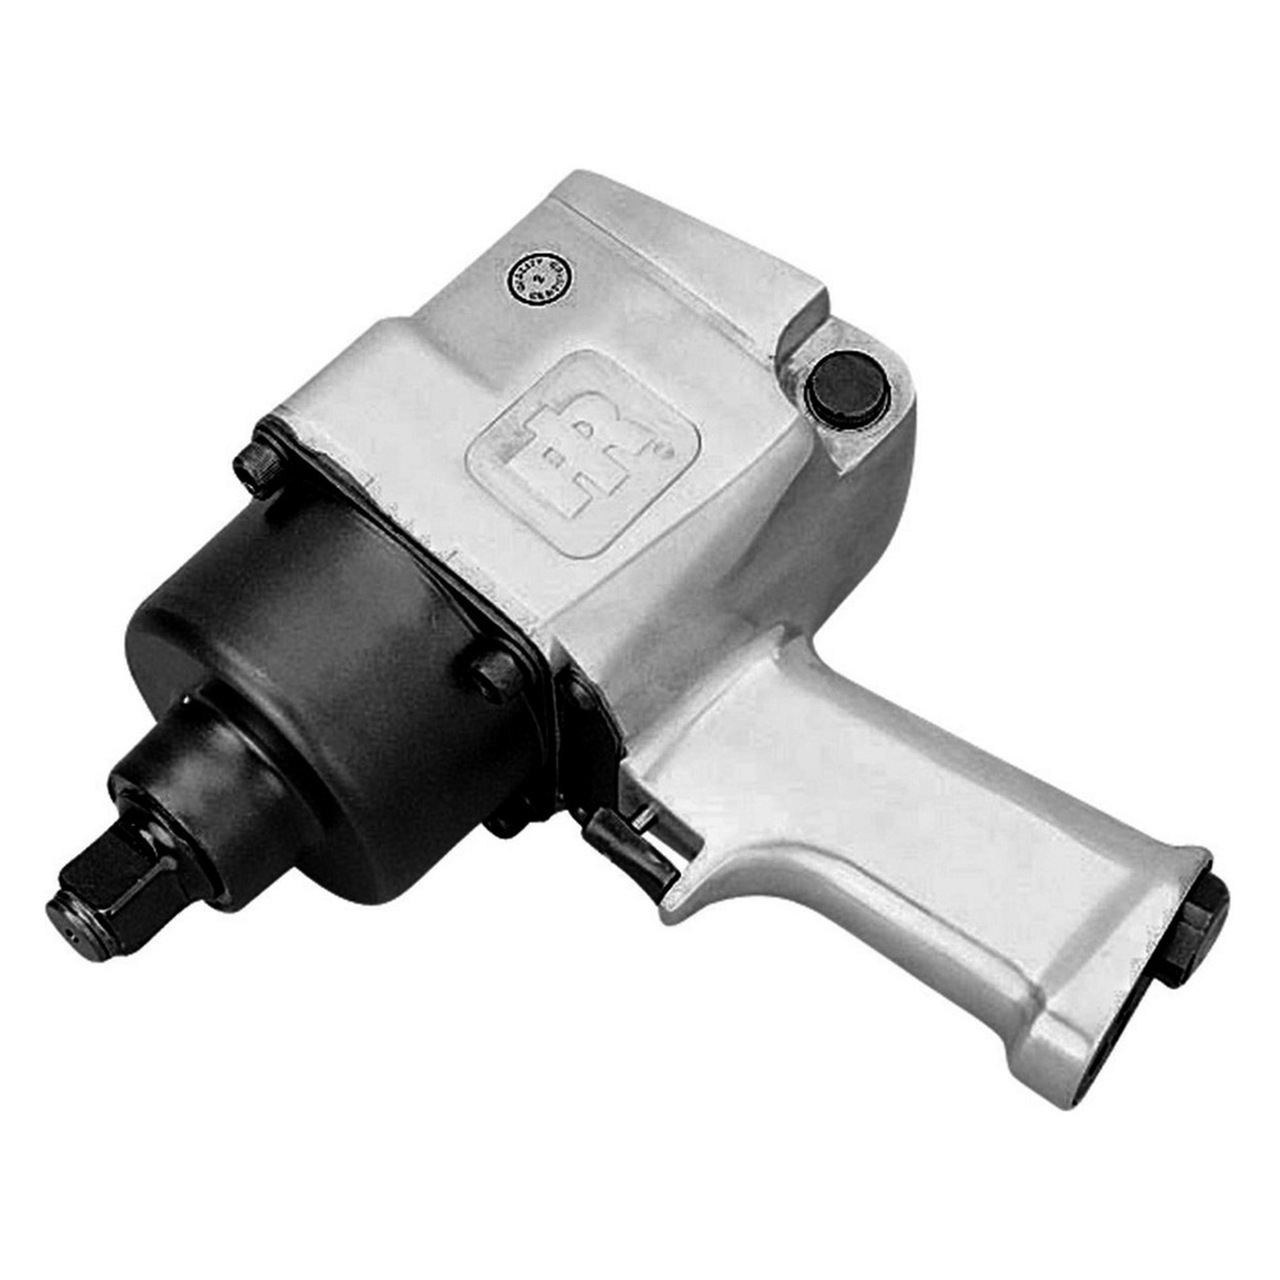 OVERSTOCK Ingersoll Rand 261 Air Impact Wrench | 3/4